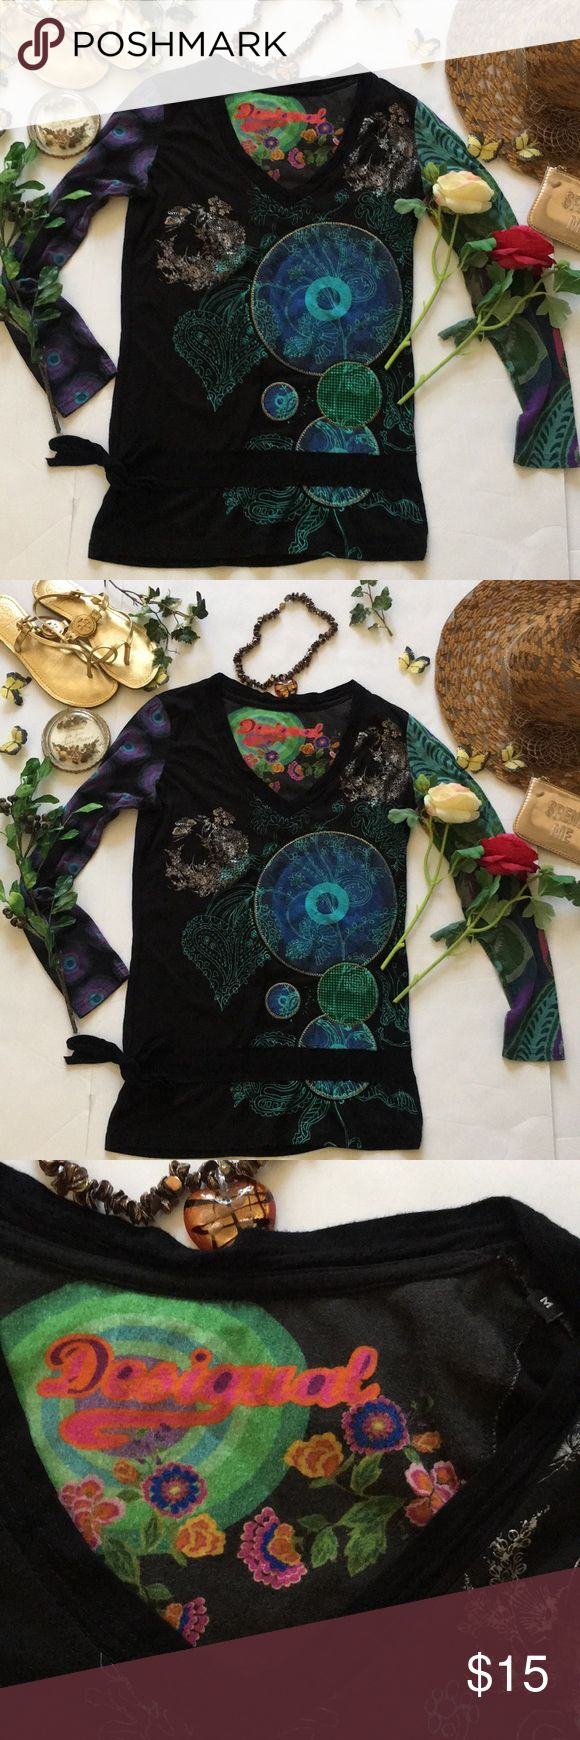 ❤Desigual Top❤ ❤In good used condition Distressed Desigual long sleeve Top in size Medium❤Background color is black❤Has a tie on the bottom right side❤Shows minor sign of wear such as fade and piling for style❤Unknown material❤Please see all photos❤ Desigual Tops